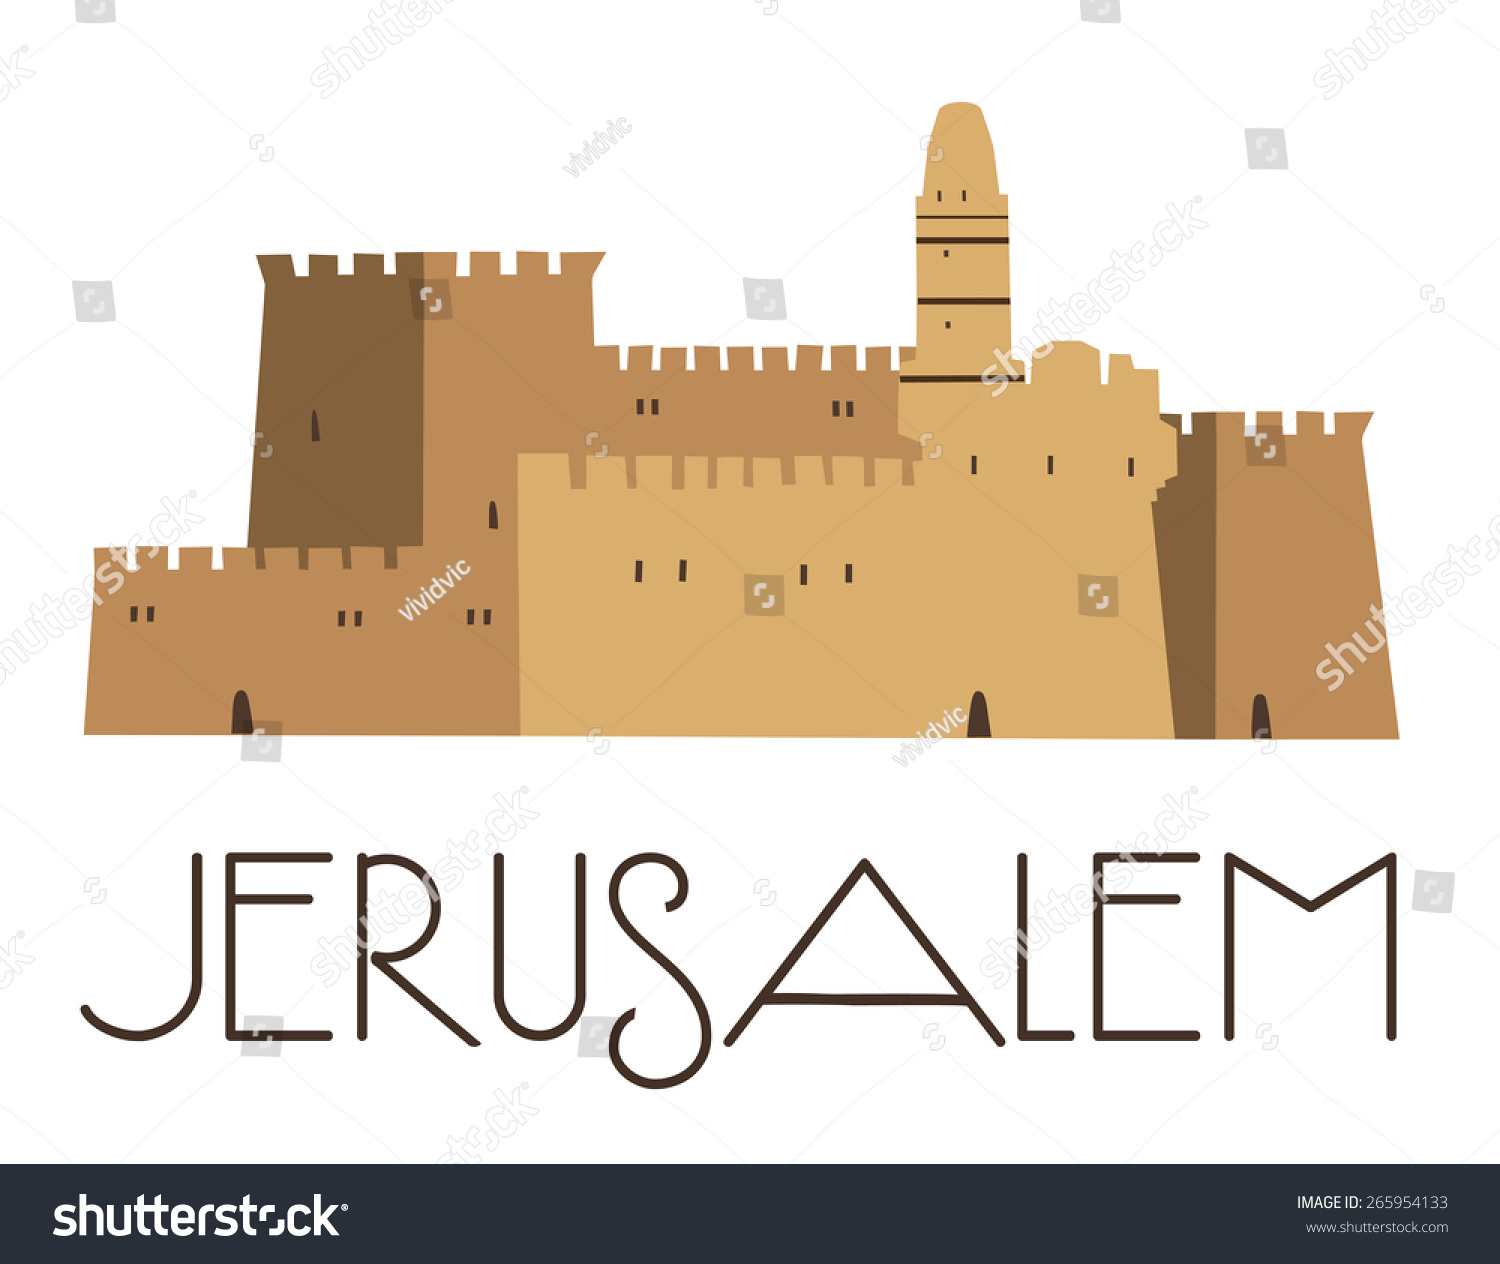 holy city middle eastern singles Jerusalem is a city located in modern-day israel and is considered by many to be one of the holiest places in the world jerusalem is a site of major significance for the three largest.